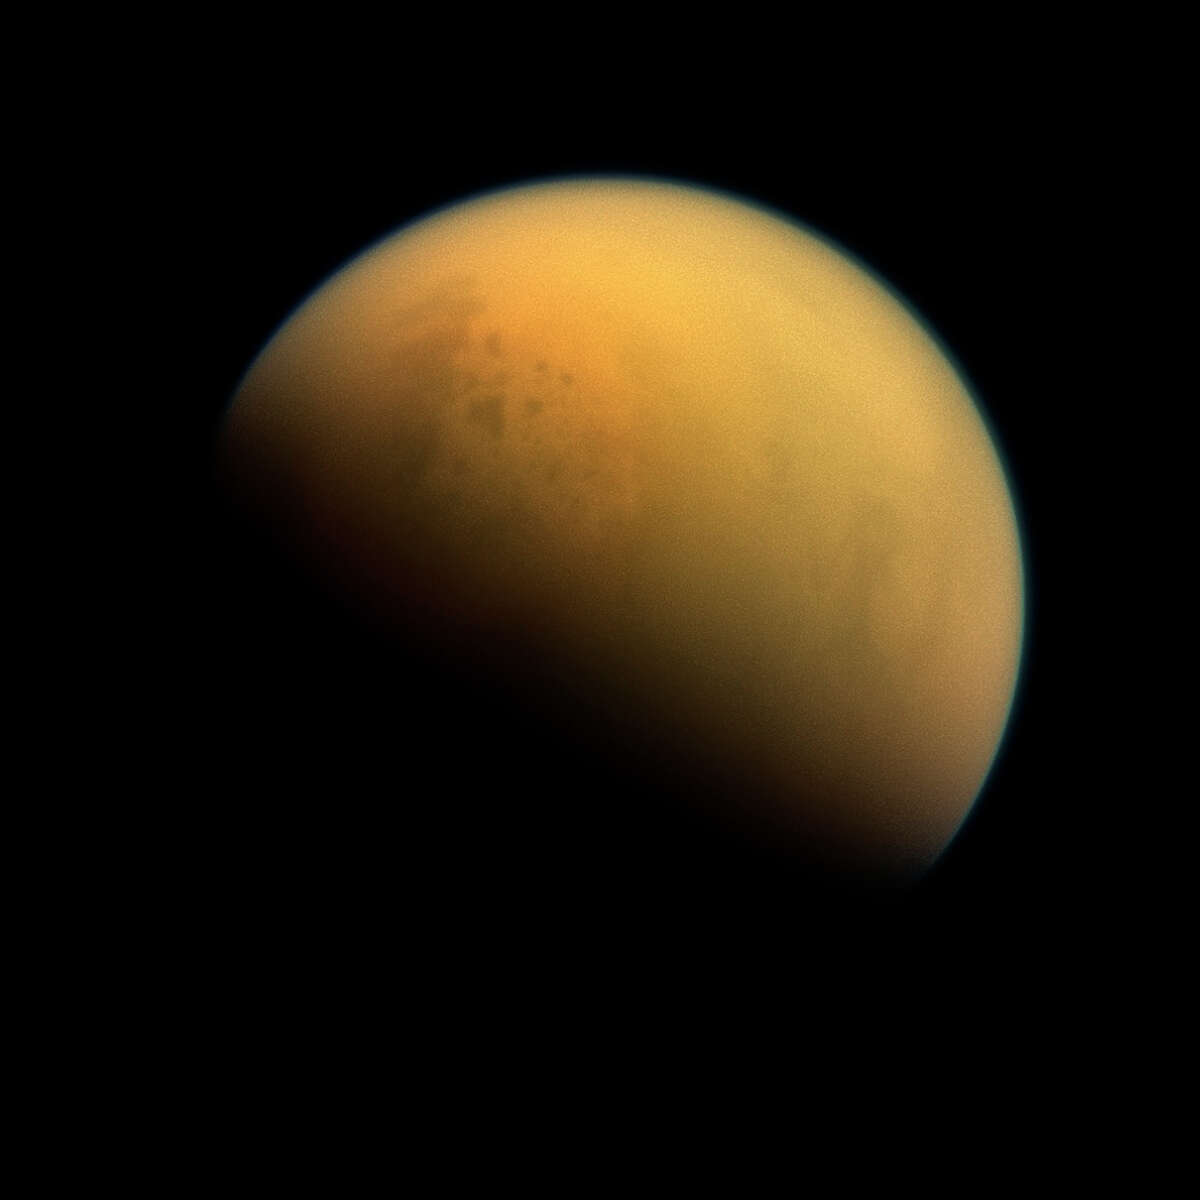 This image provided by NASA shows the hazy atmosphere of Saturn?'s moon, Titan. NASA?'s Cassini spacecraft was able to peer through the haze and spot lakes made up of hydrocarbons. The view was acquired at a distance of approximately 809,000 miles (1.303 million kilometers) from Titan. Image scale is 5 miles (8 kilometers) per pixel. (AP Photo/NASA/JPL-Caltech/Space Science Institute) ORG XMIT: LA114